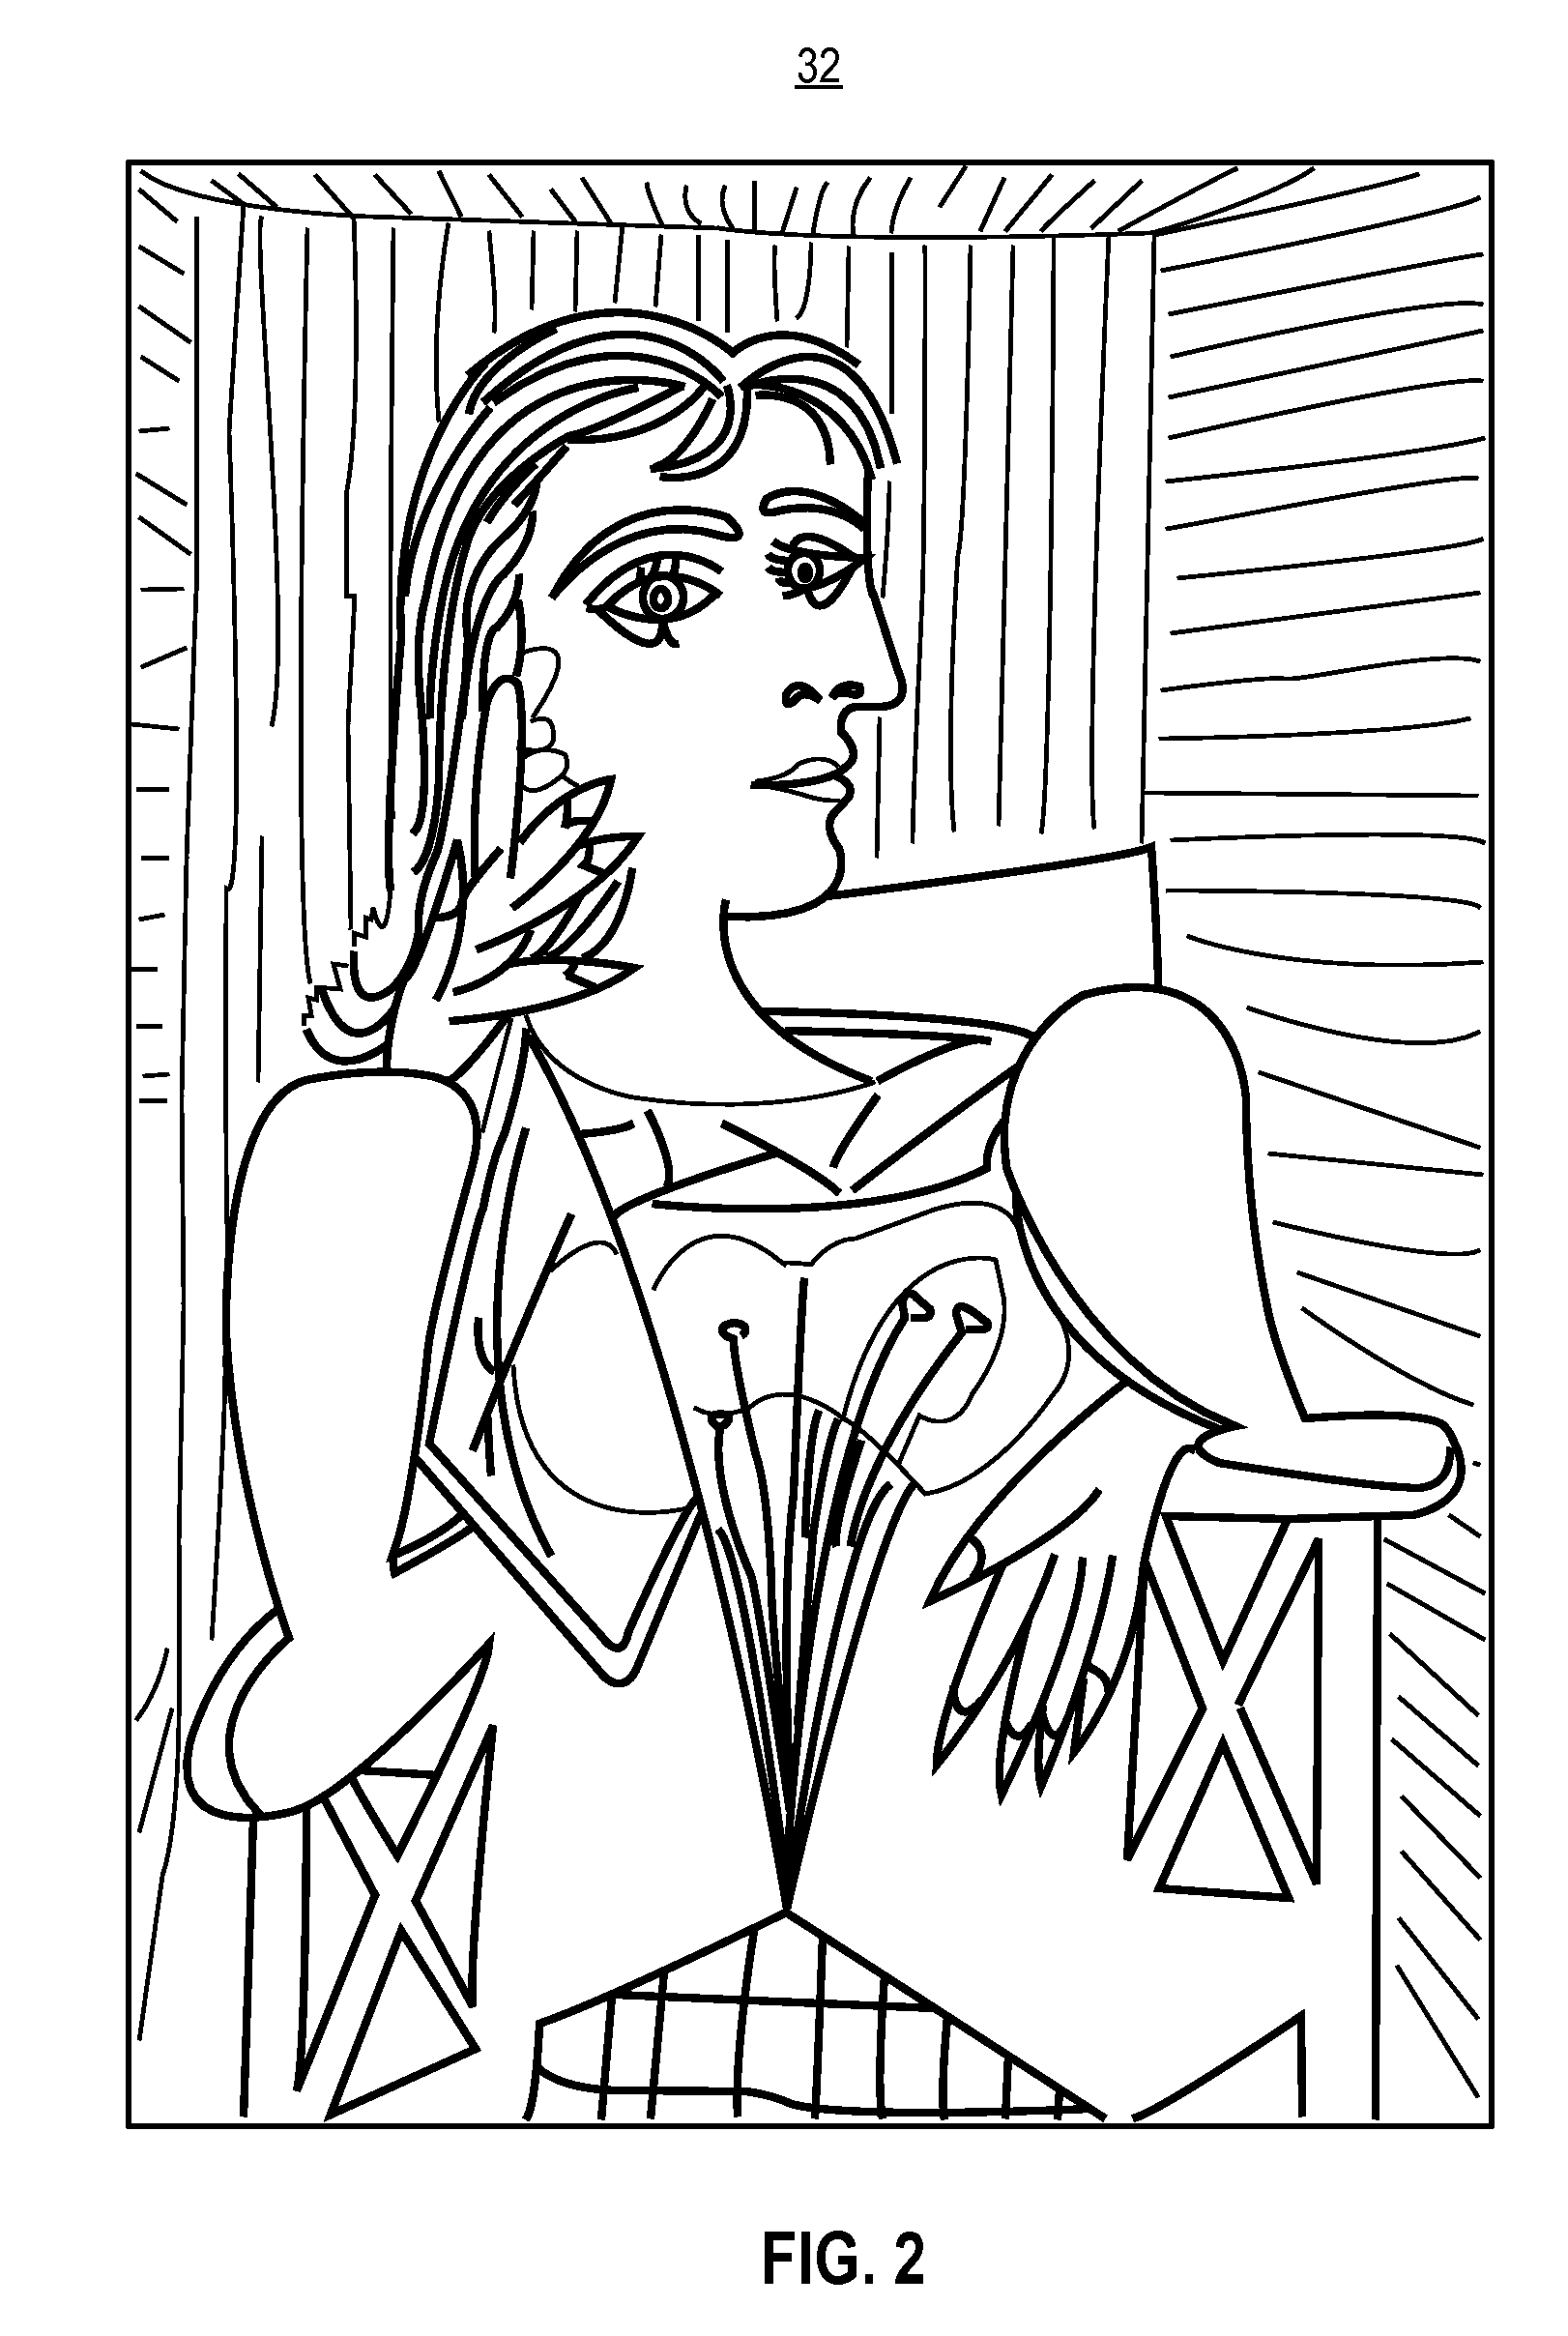 6 best images of picasso printable coloring pages free picasso printable coloring pages pablo. Black Bedroom Furniture Sets. Home Design Ideas